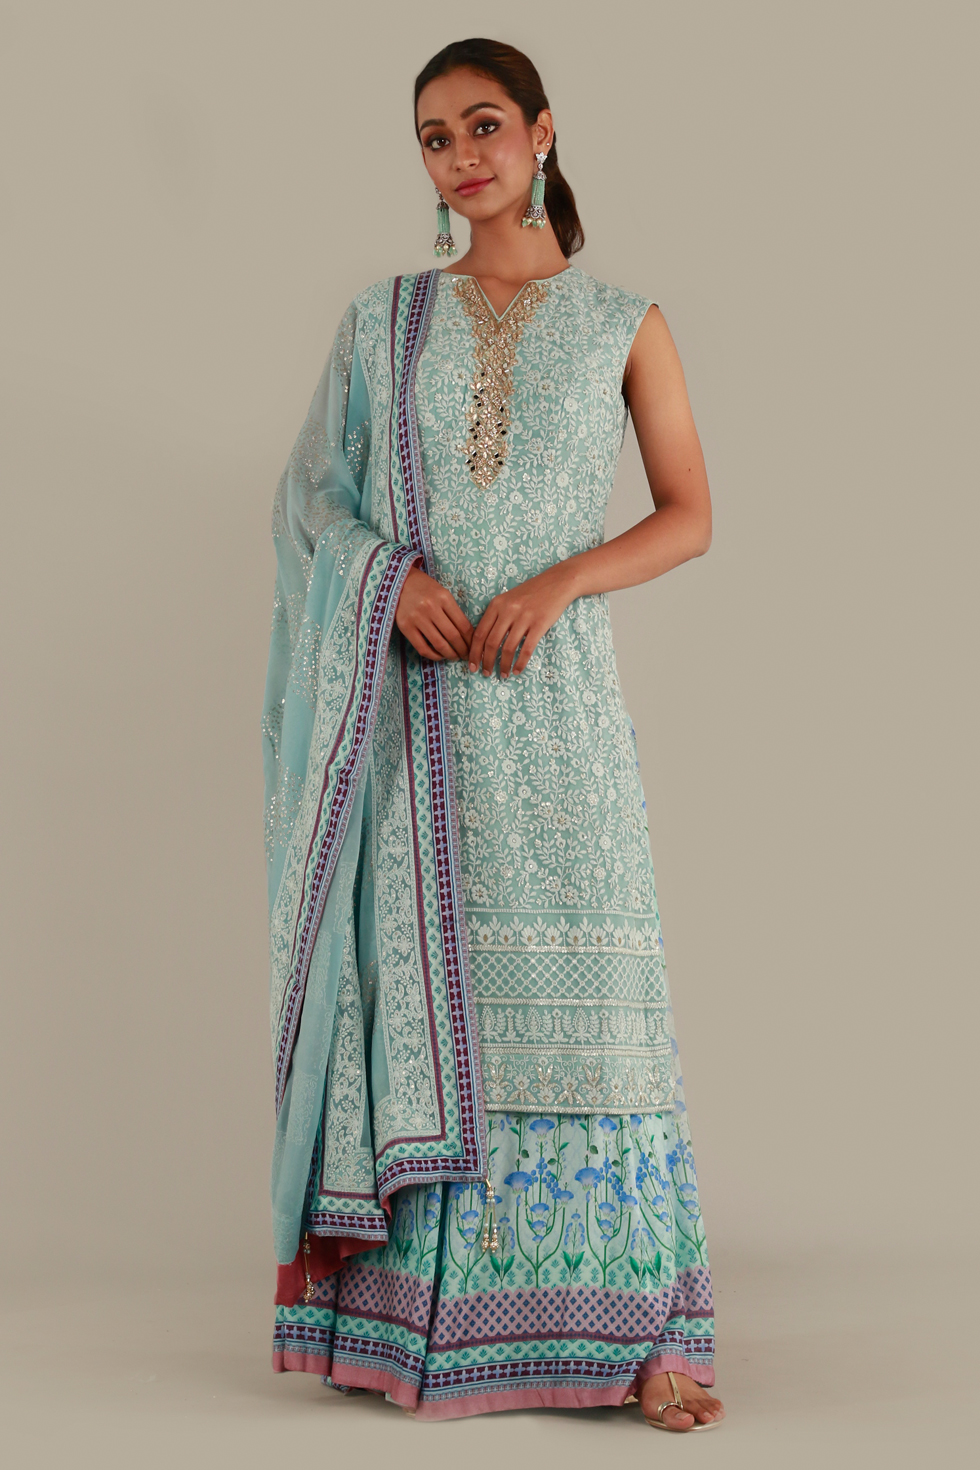 Blue kurta top with embroidered neckline, printed palazzo pants and matching dupatta with thread work and sequin details